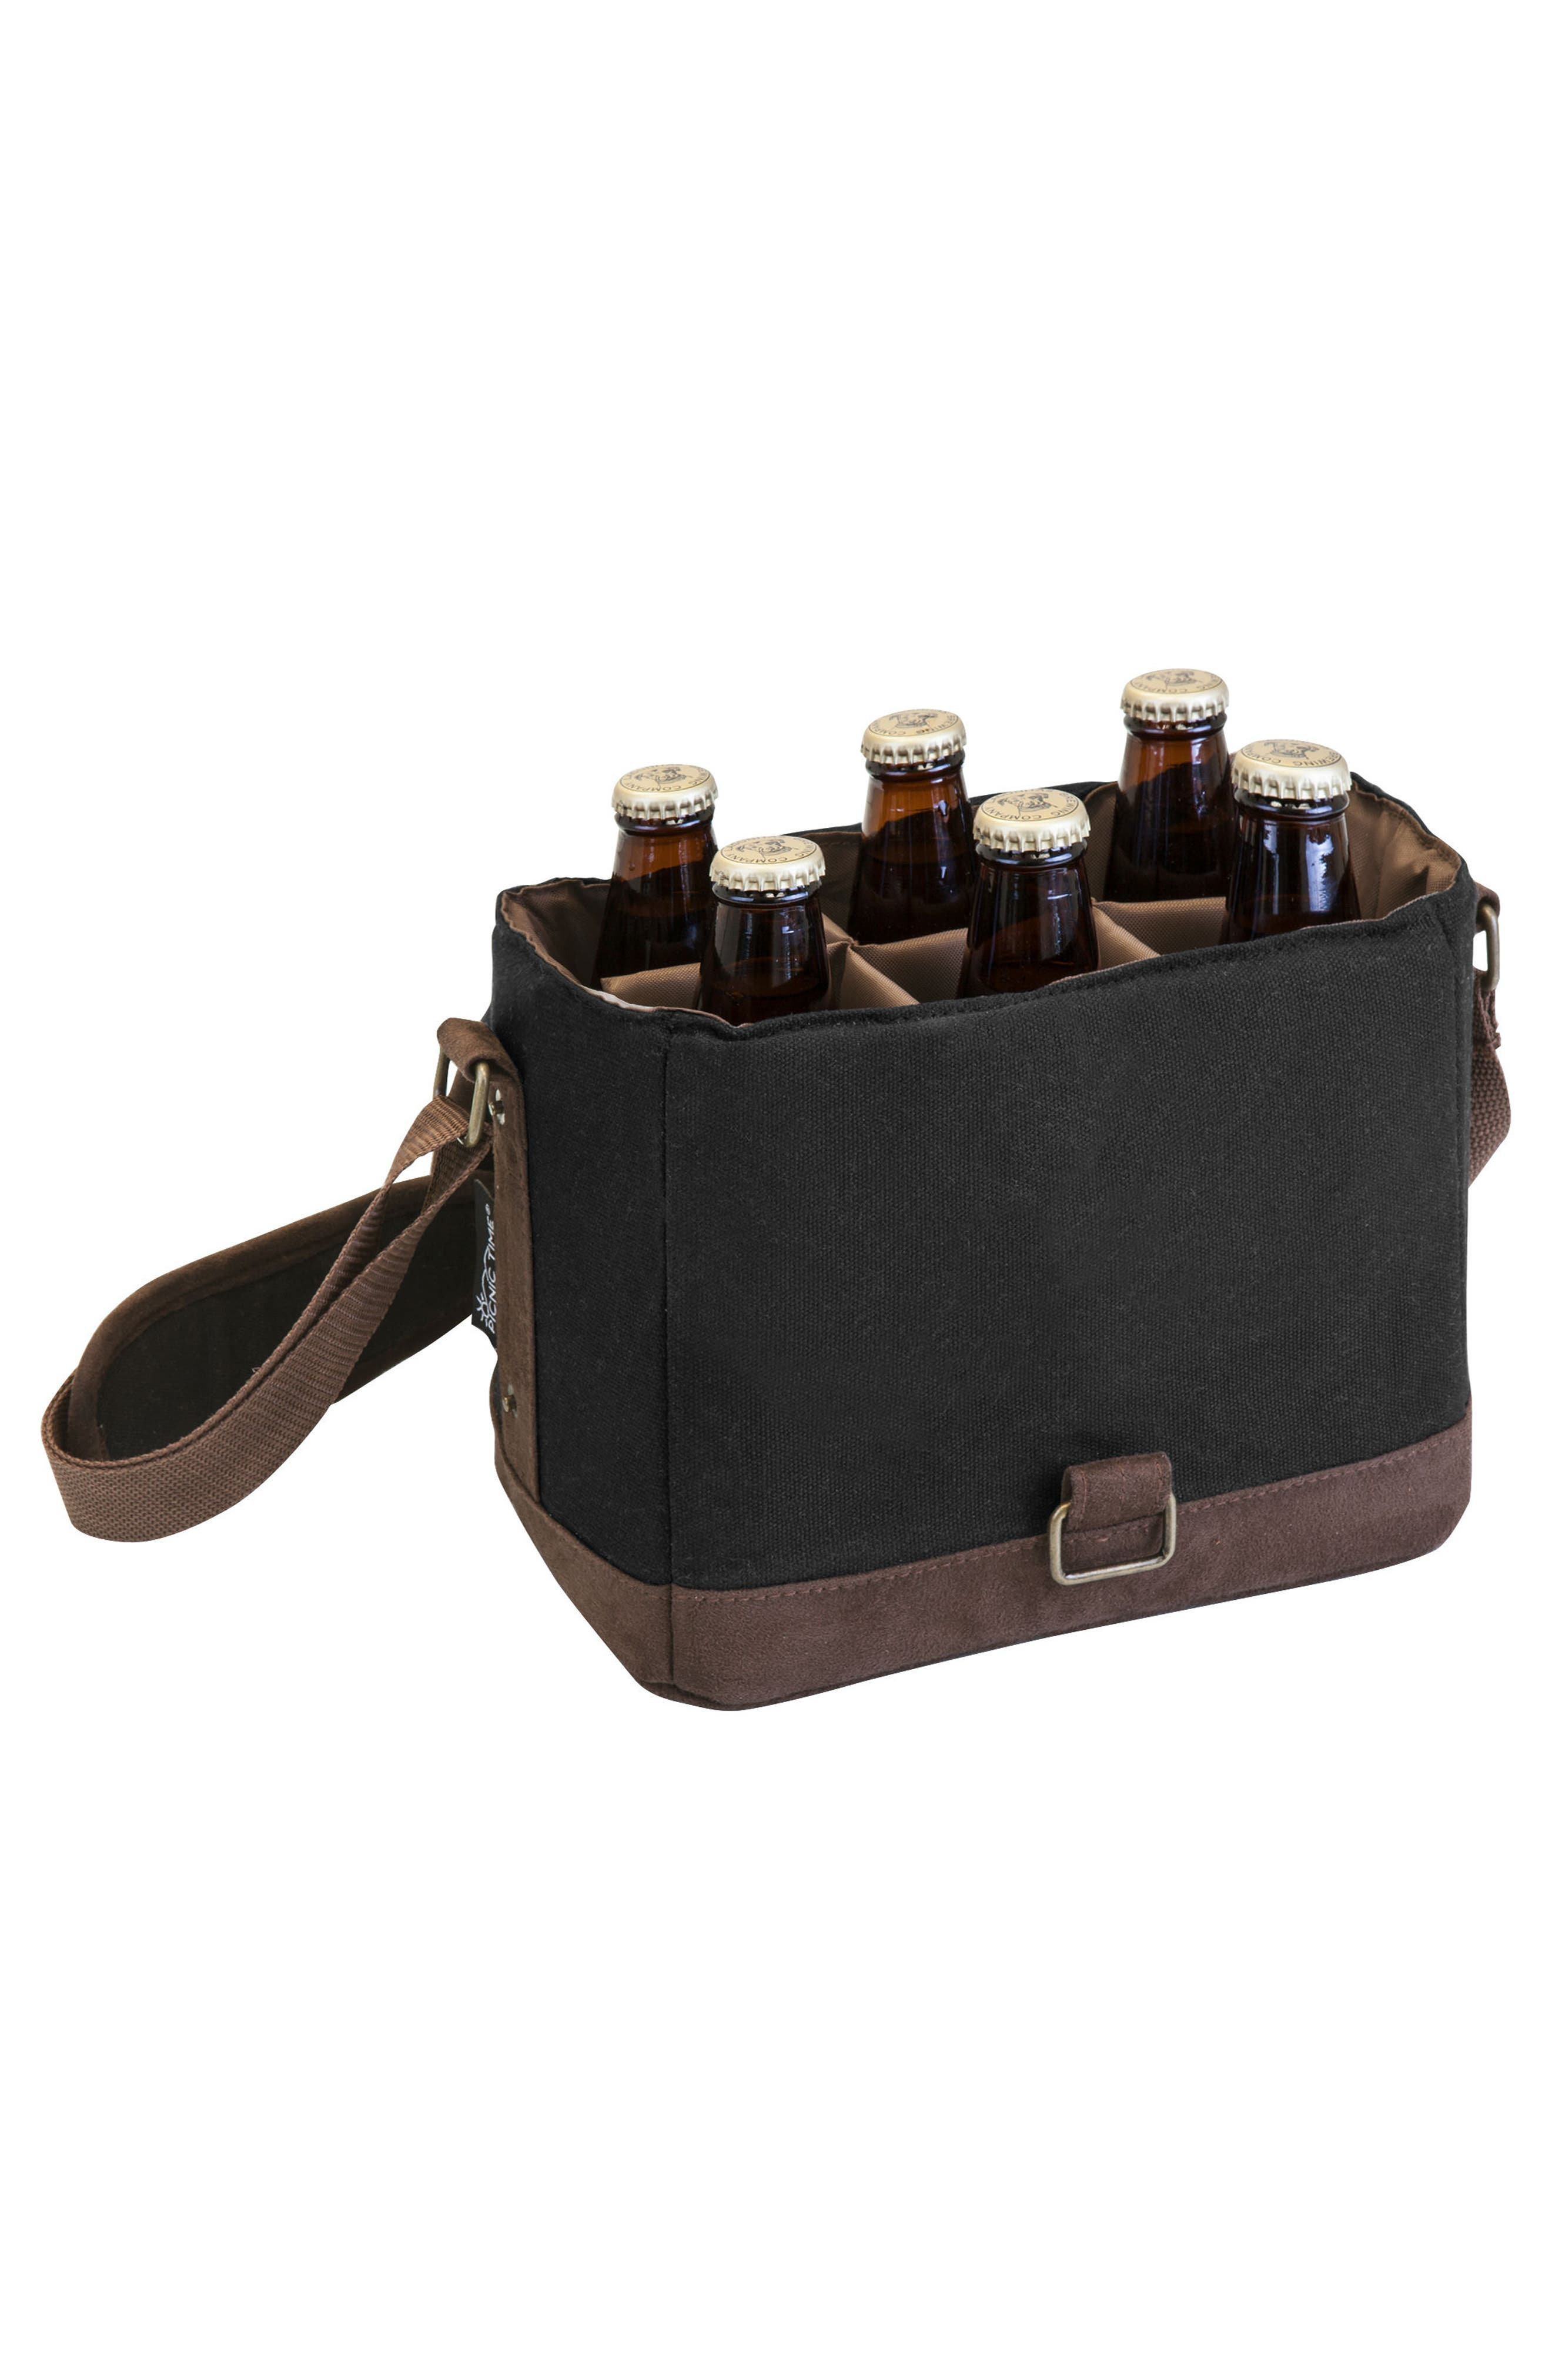 Beer Caddy Cooler Tote,                             Alternate thumbnail 2, color,                             001